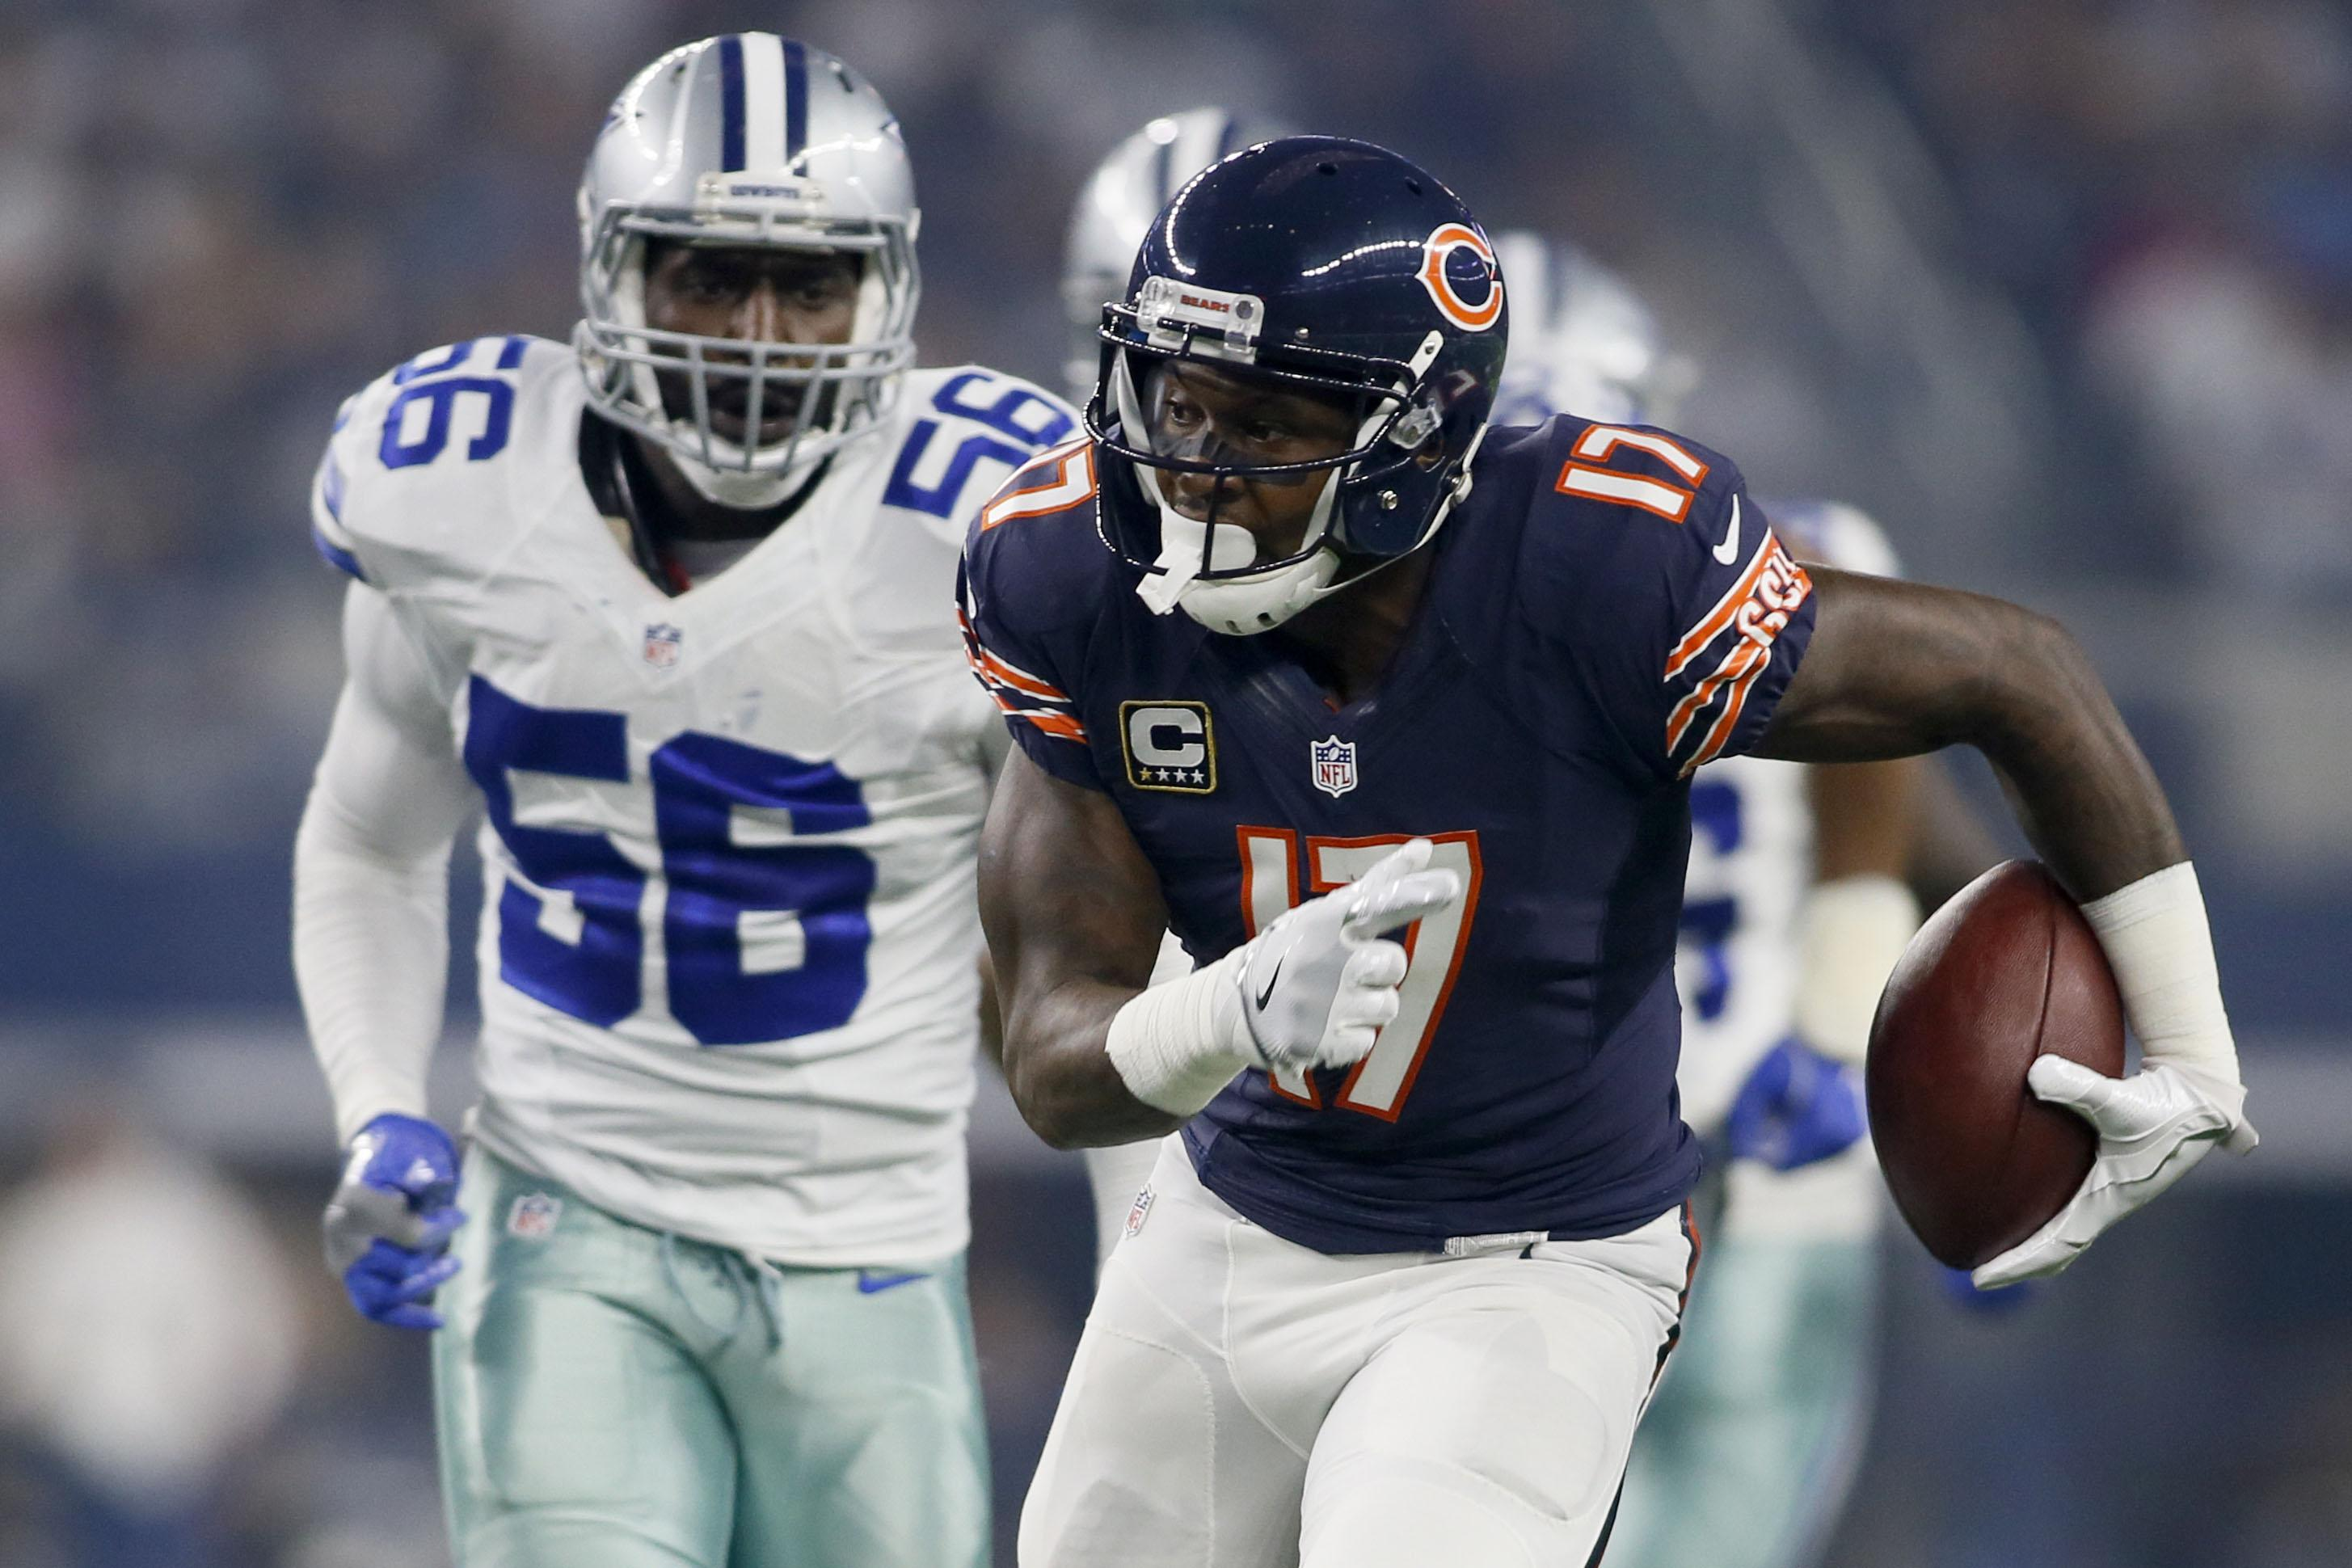 Alshon Jeffery pens goodbye to Chicago, Bears in Players' Tribune letter